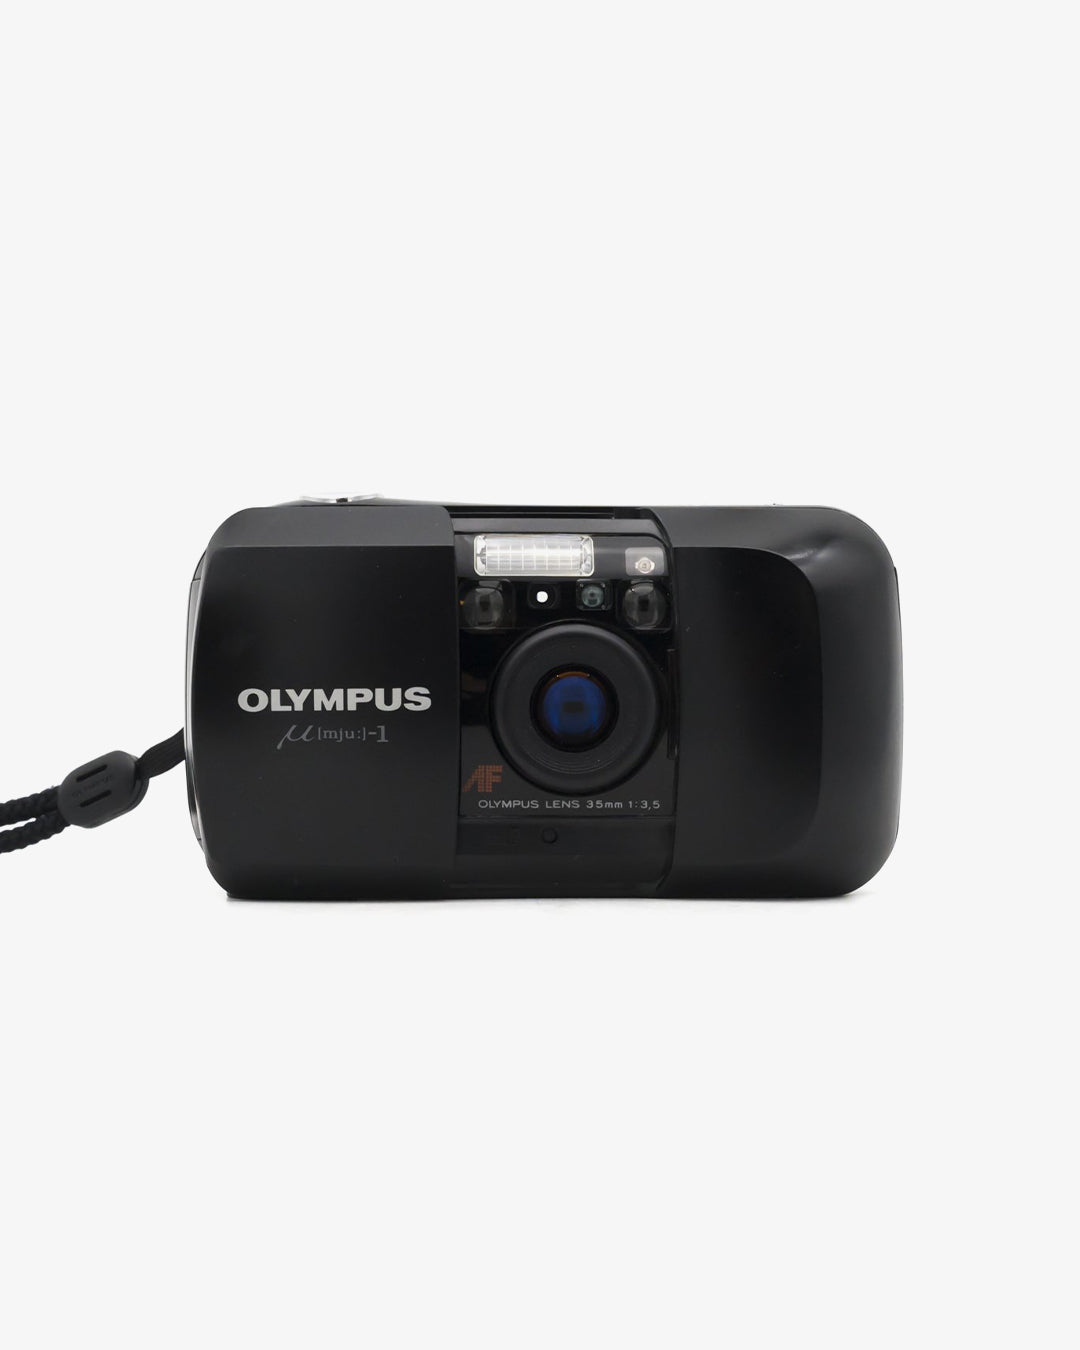 Olympus Infinity Stylus Epic Mju 1 point and shoot with 35mm f/2.8 lens (Flash not working)